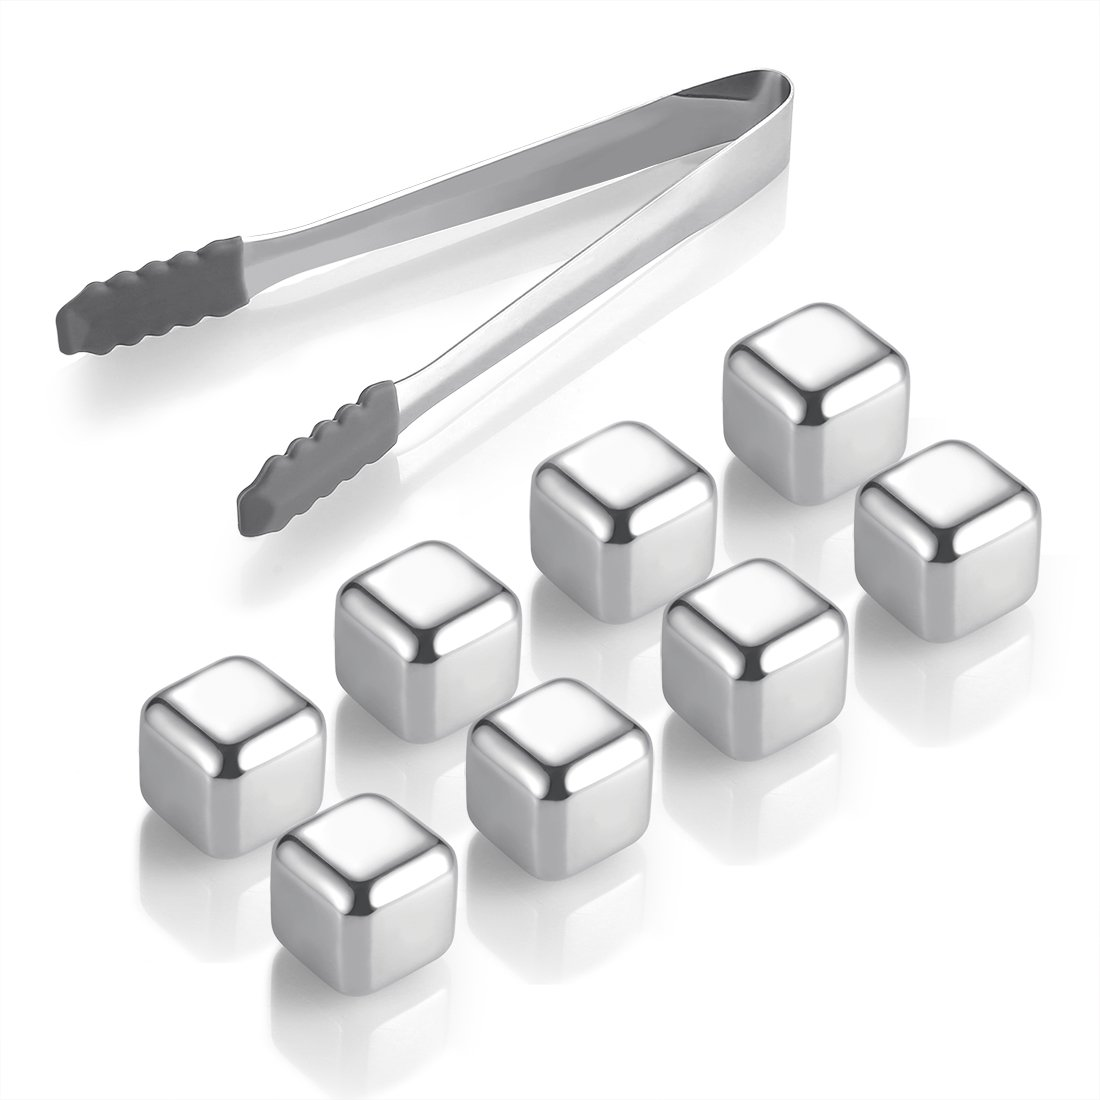 Stainless Steel Whiskey Ice Cubes Better-Nee Ice Stones Drink Coolers Freezing Storage Tary and Tongs Reusable Wine Chillers Chilling Rocks